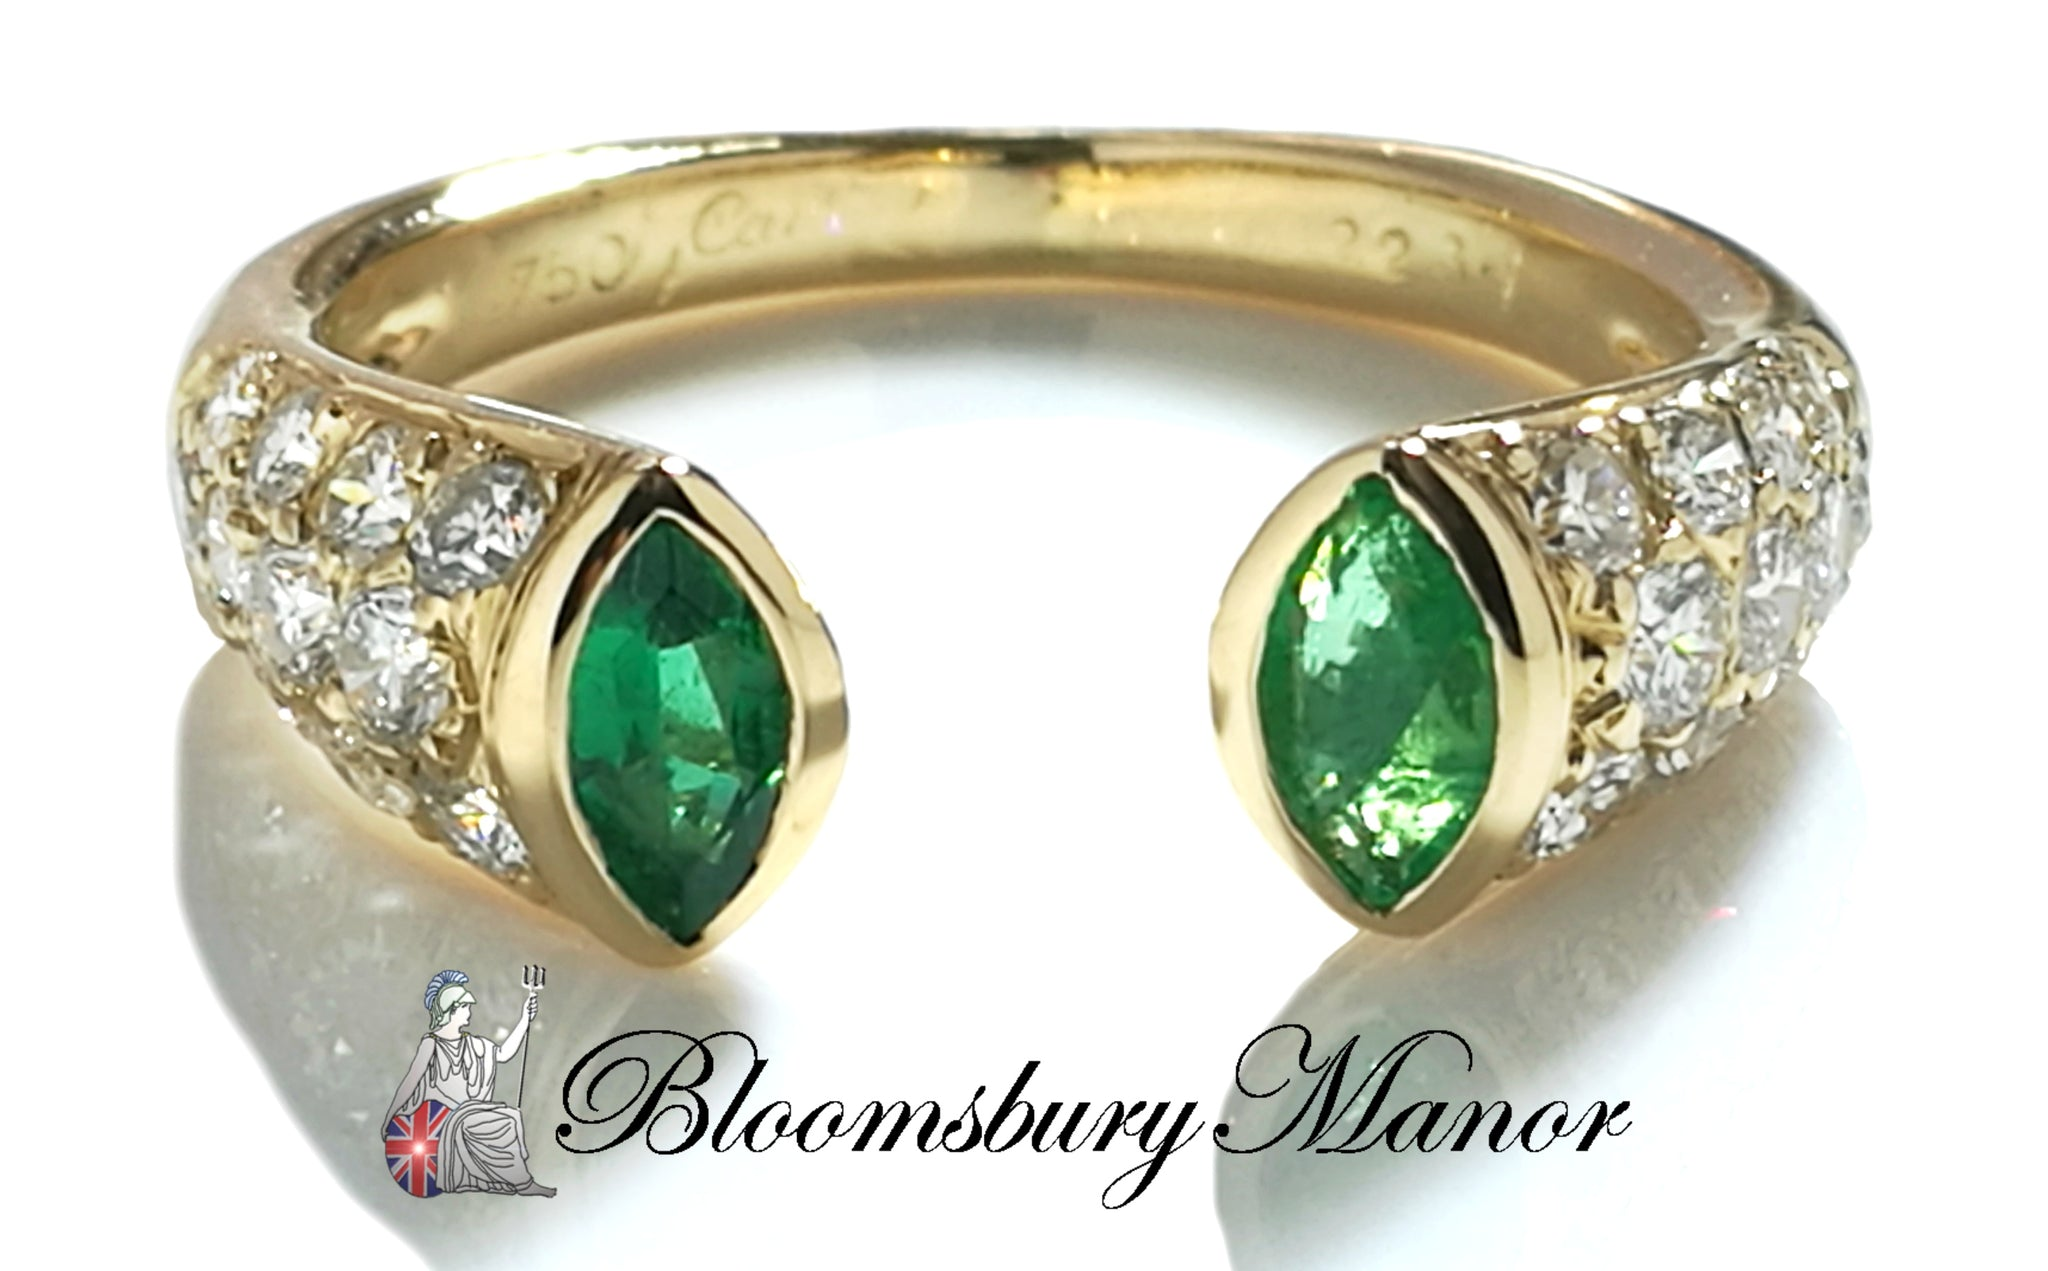 logo cartier vintage in gold bombe ring products diamond emerald sz mimi dome pav pave size